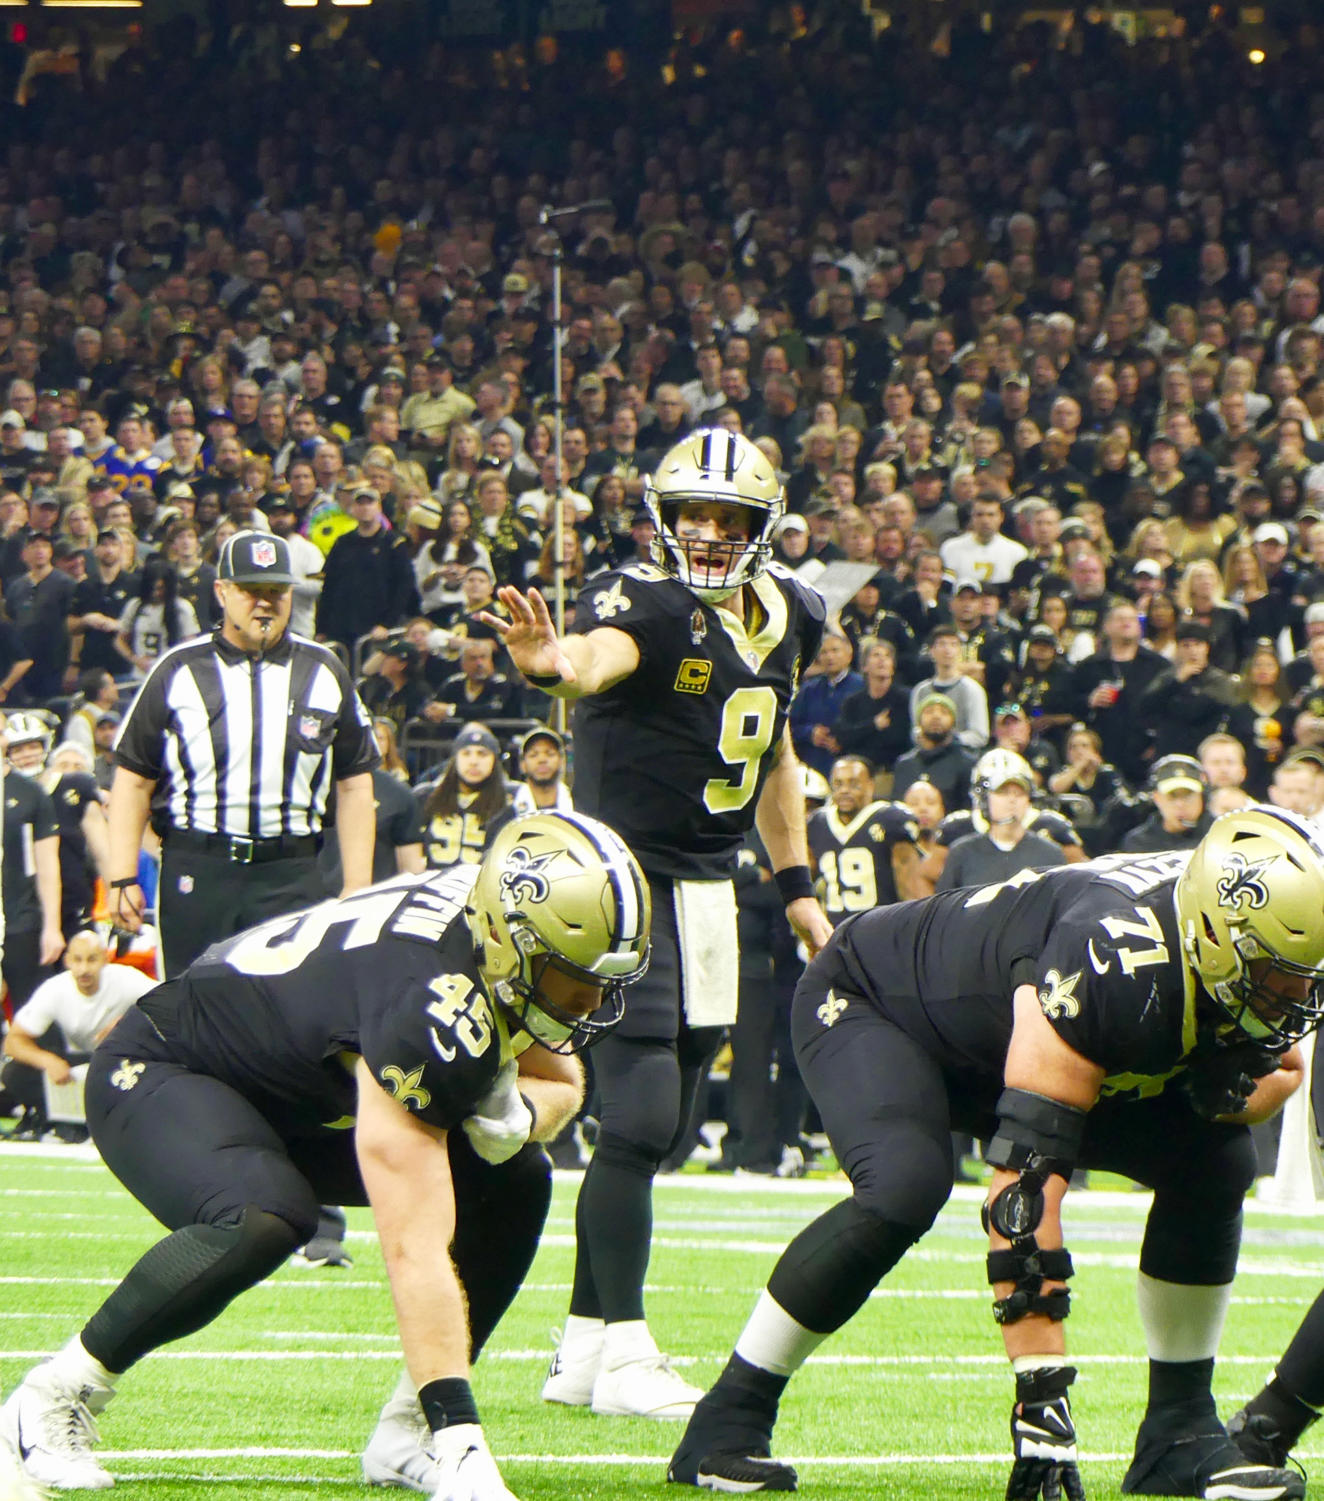 Quarterback+Drew+Brees+%289%29+gears+up+for+a+play.+Photo+credit%3A+Olivia+Ledet